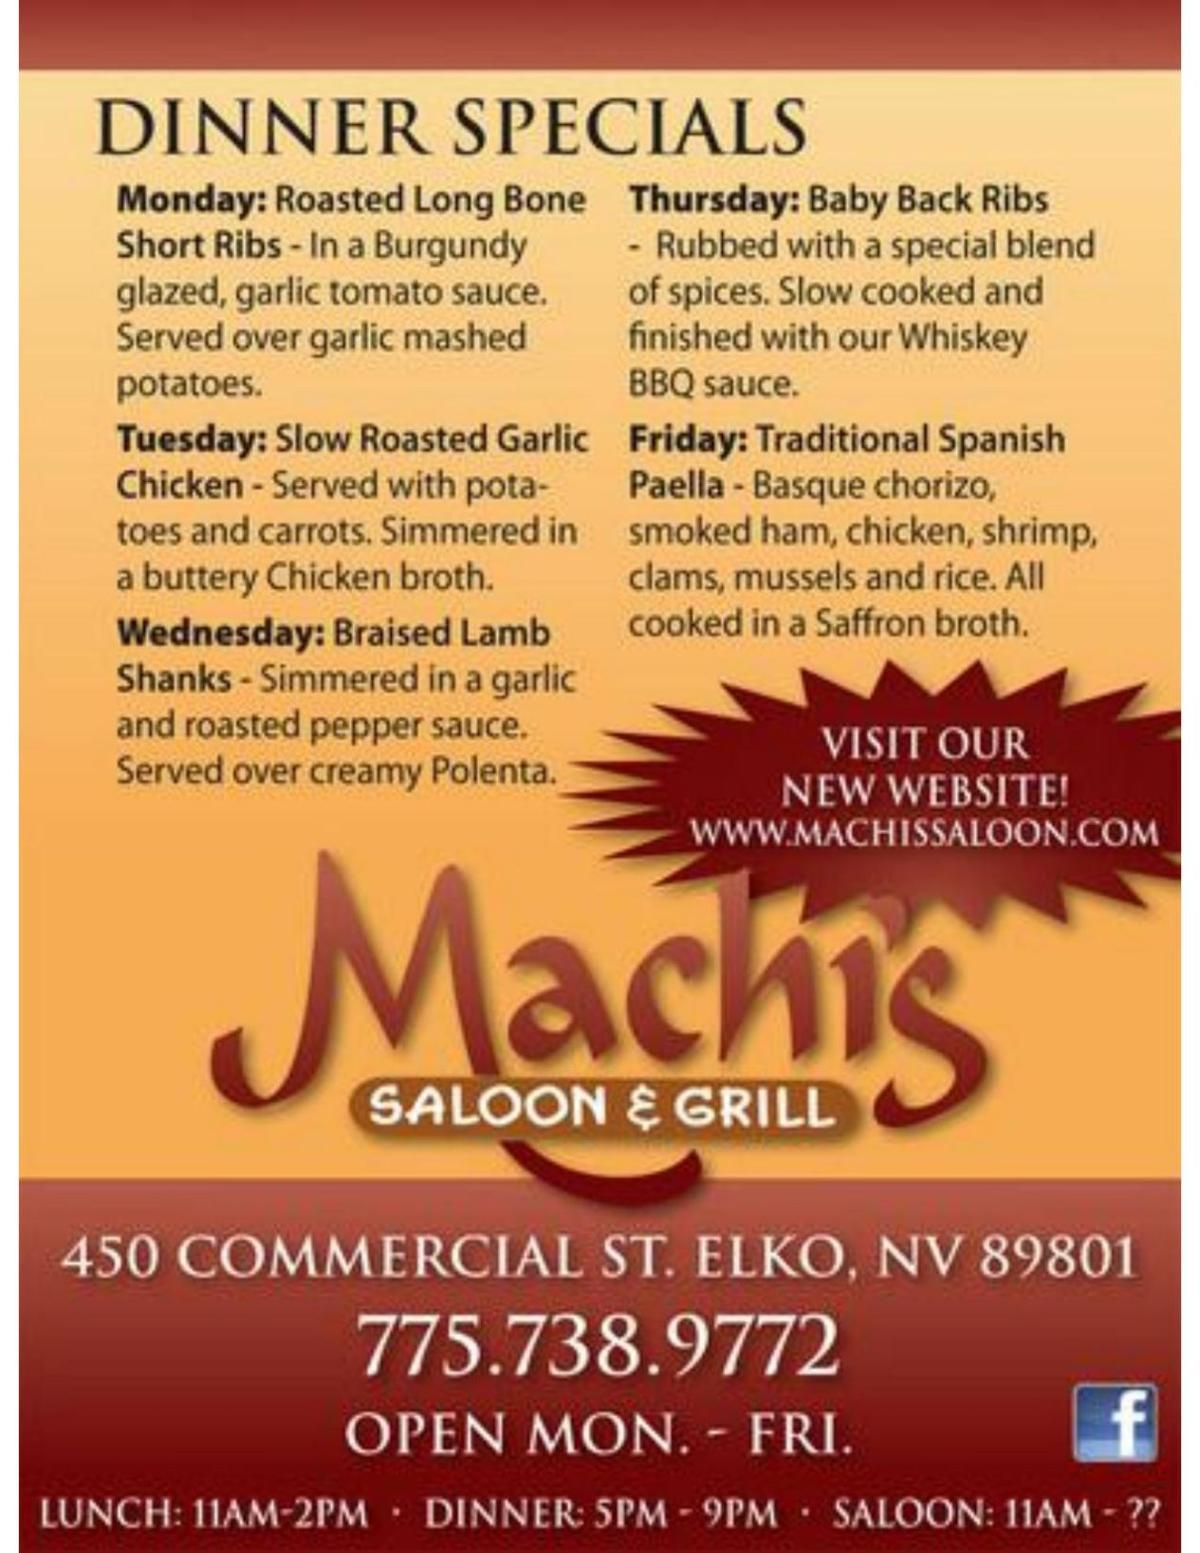 Machi's Saloon & Grill Dinner Specials